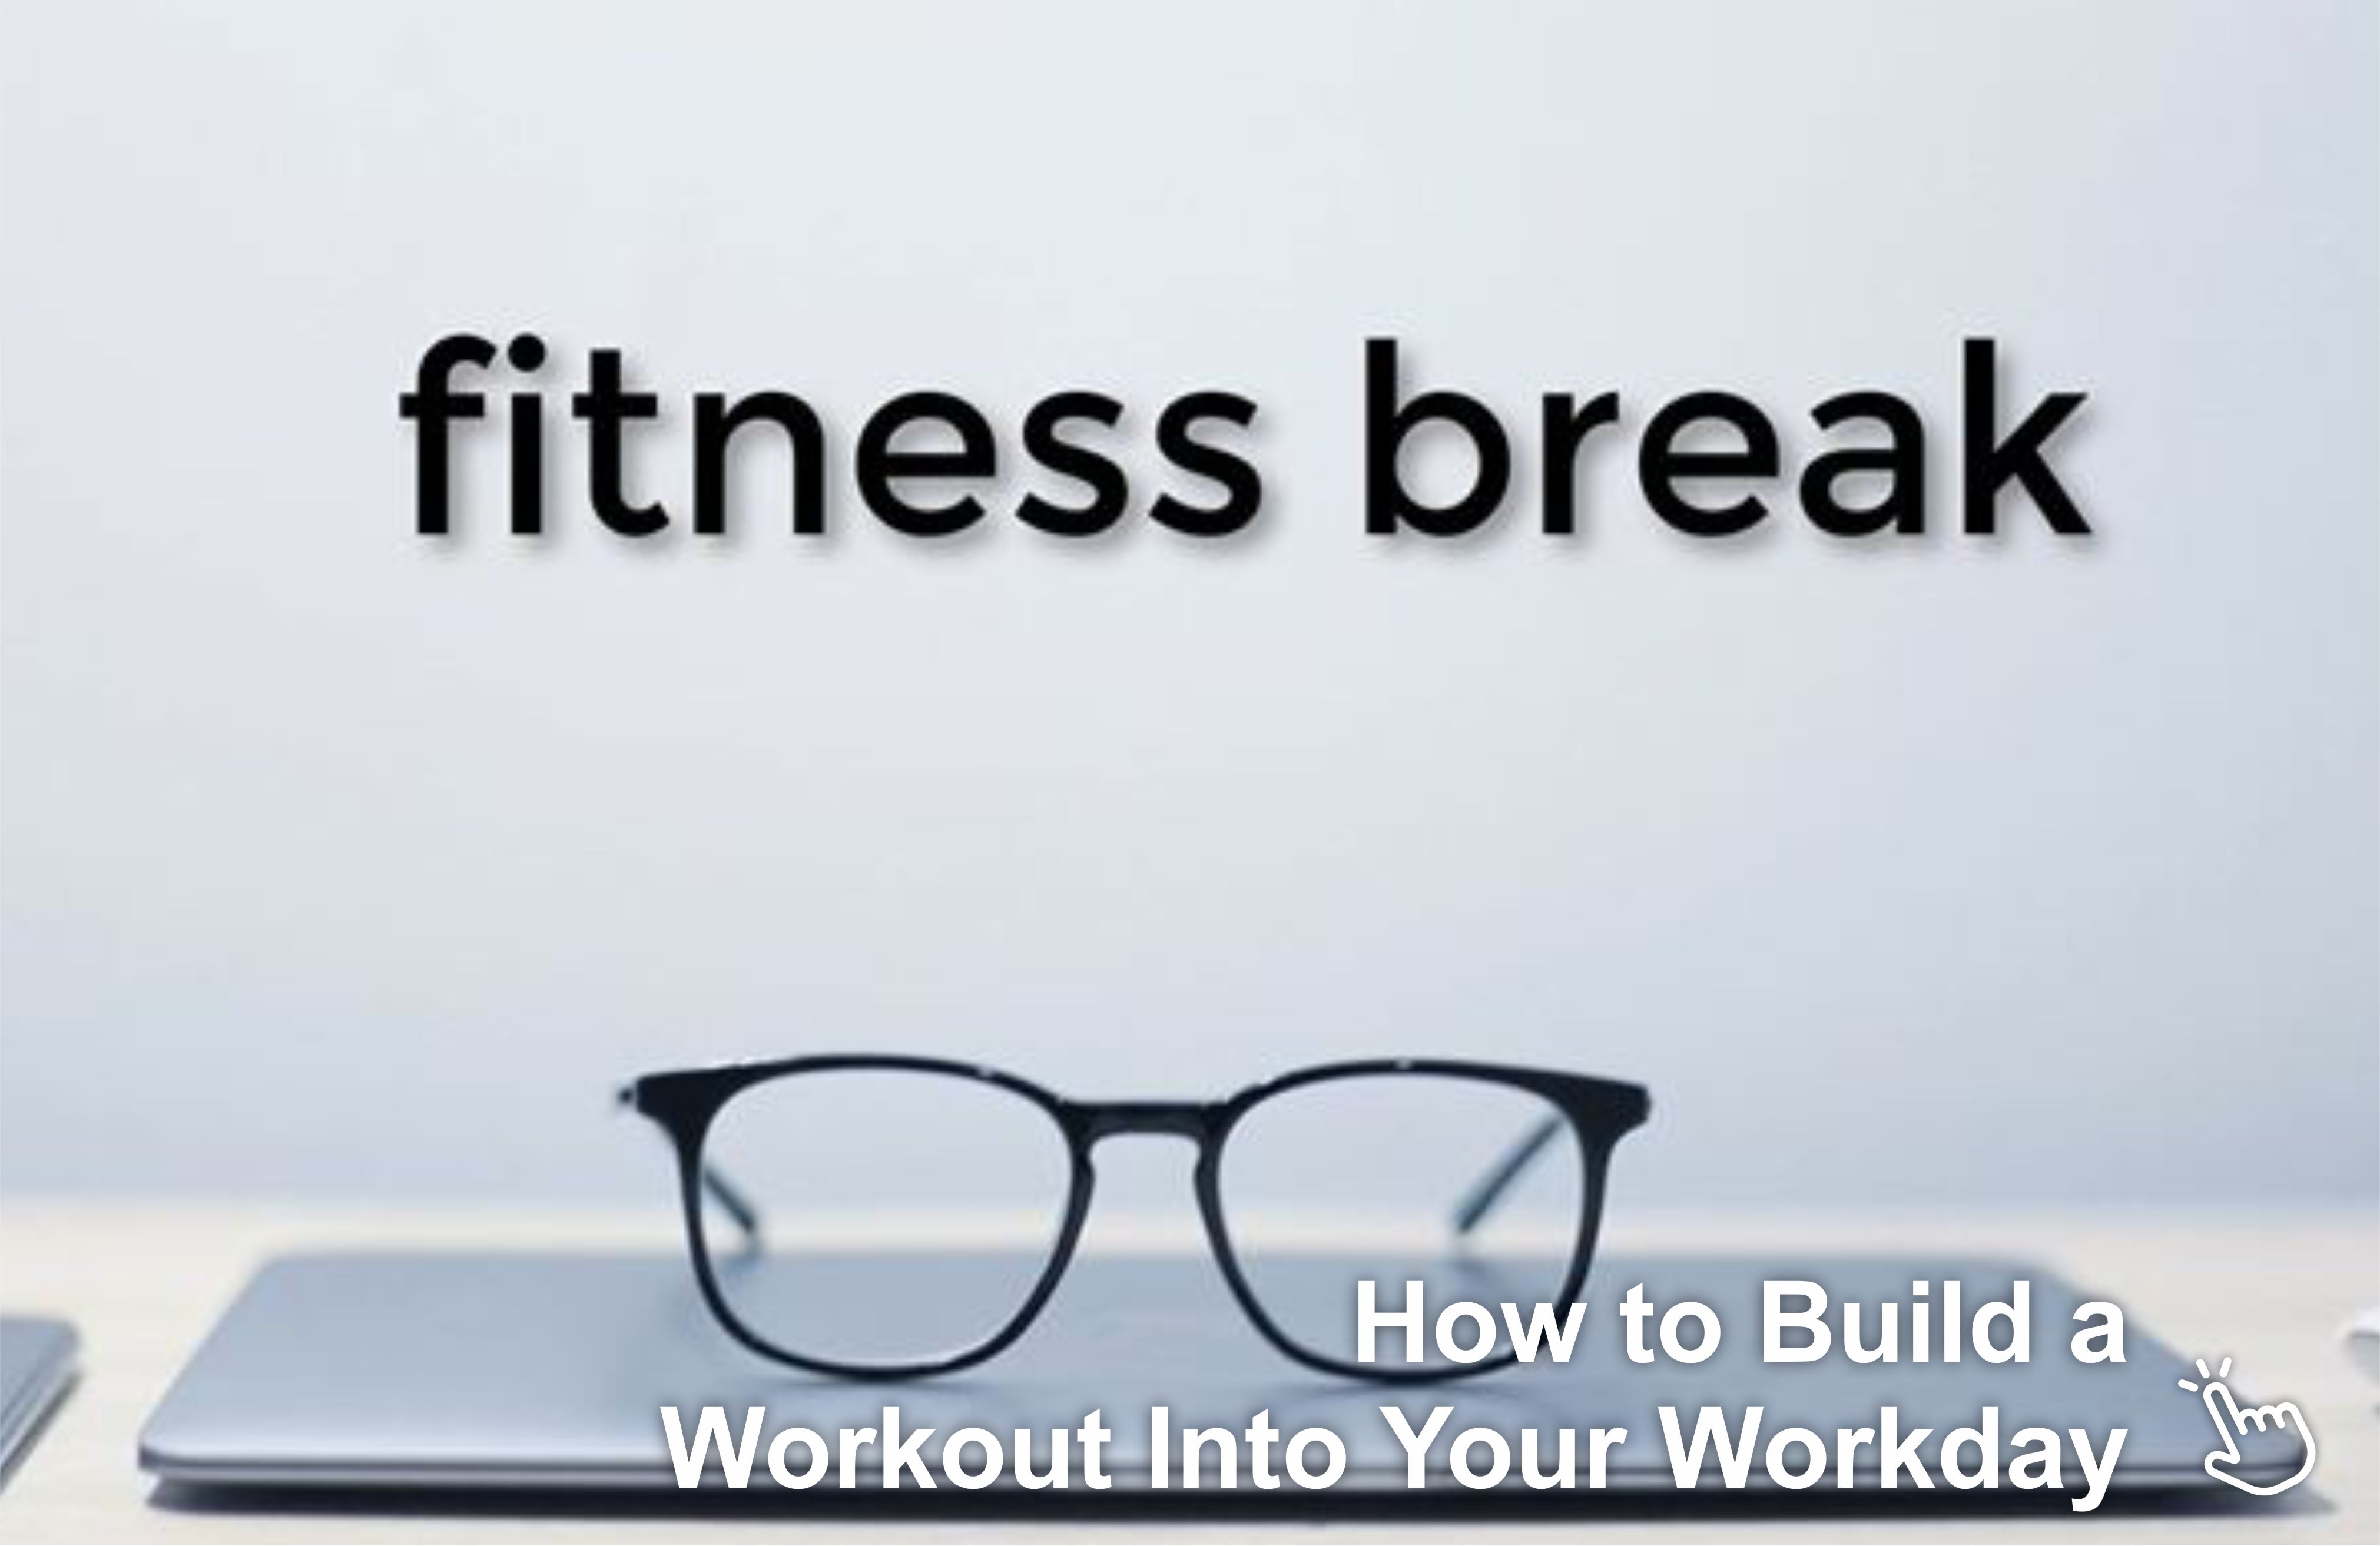 1How to Build a Workout Into Your Workday